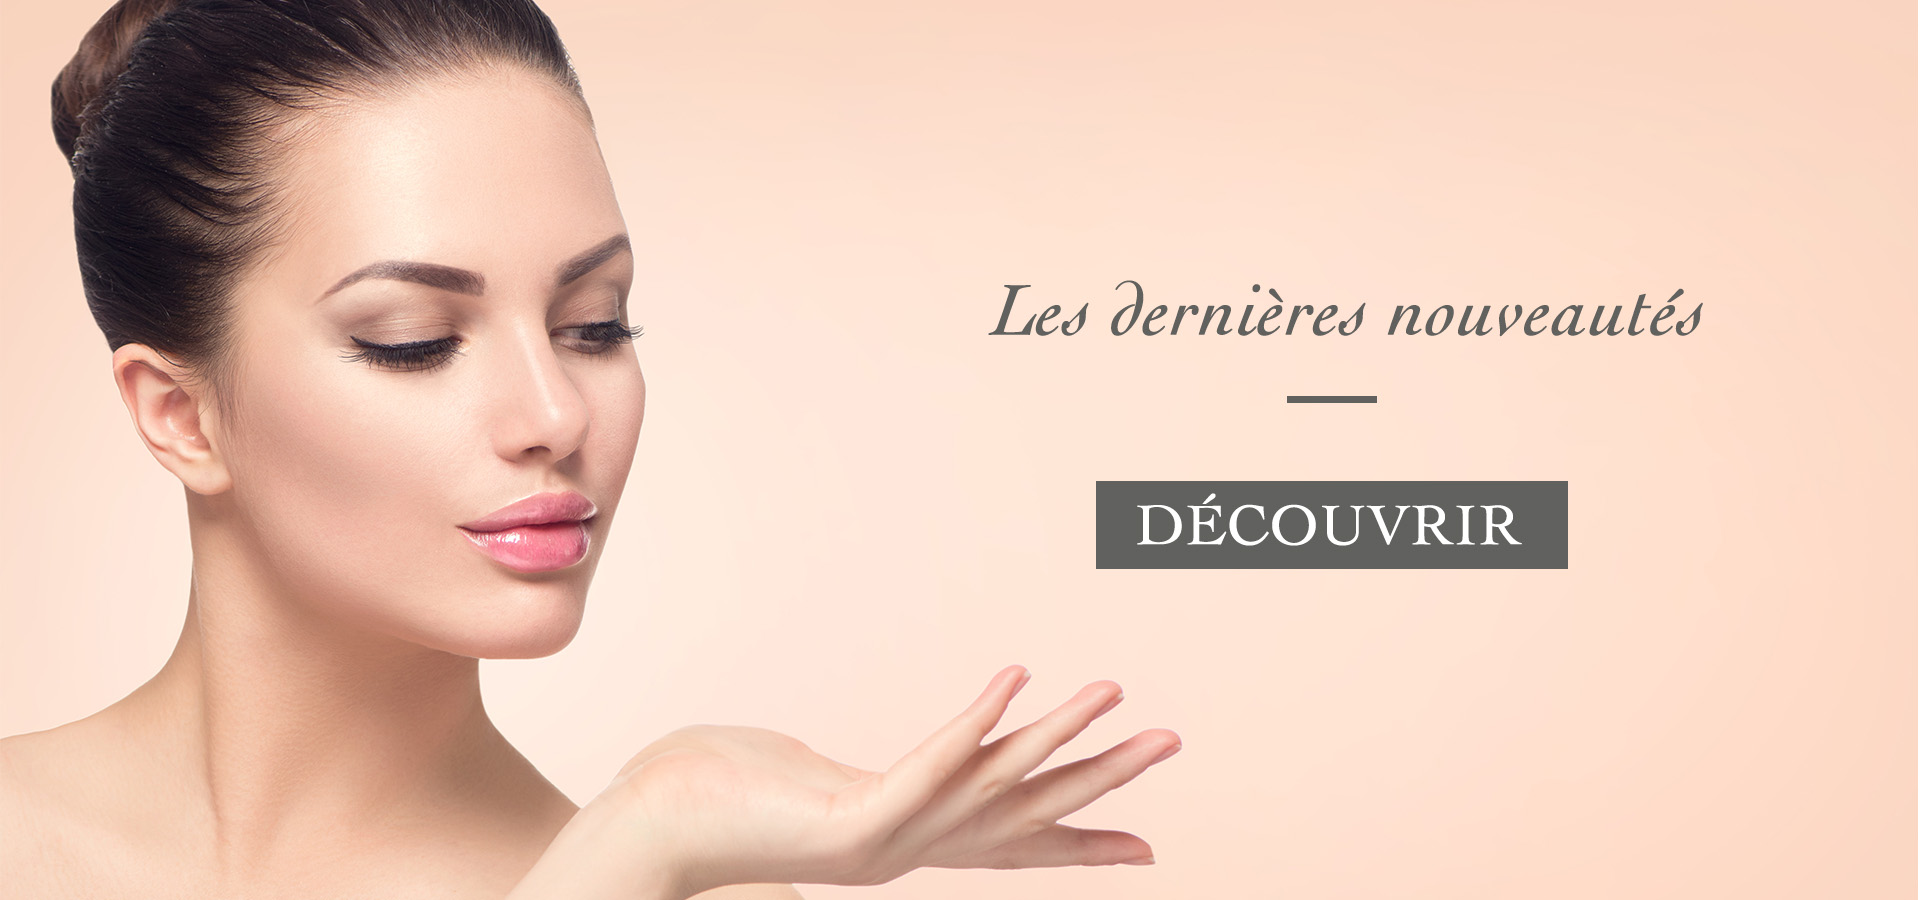 salon-de-beaute-mauguio-le-cocon